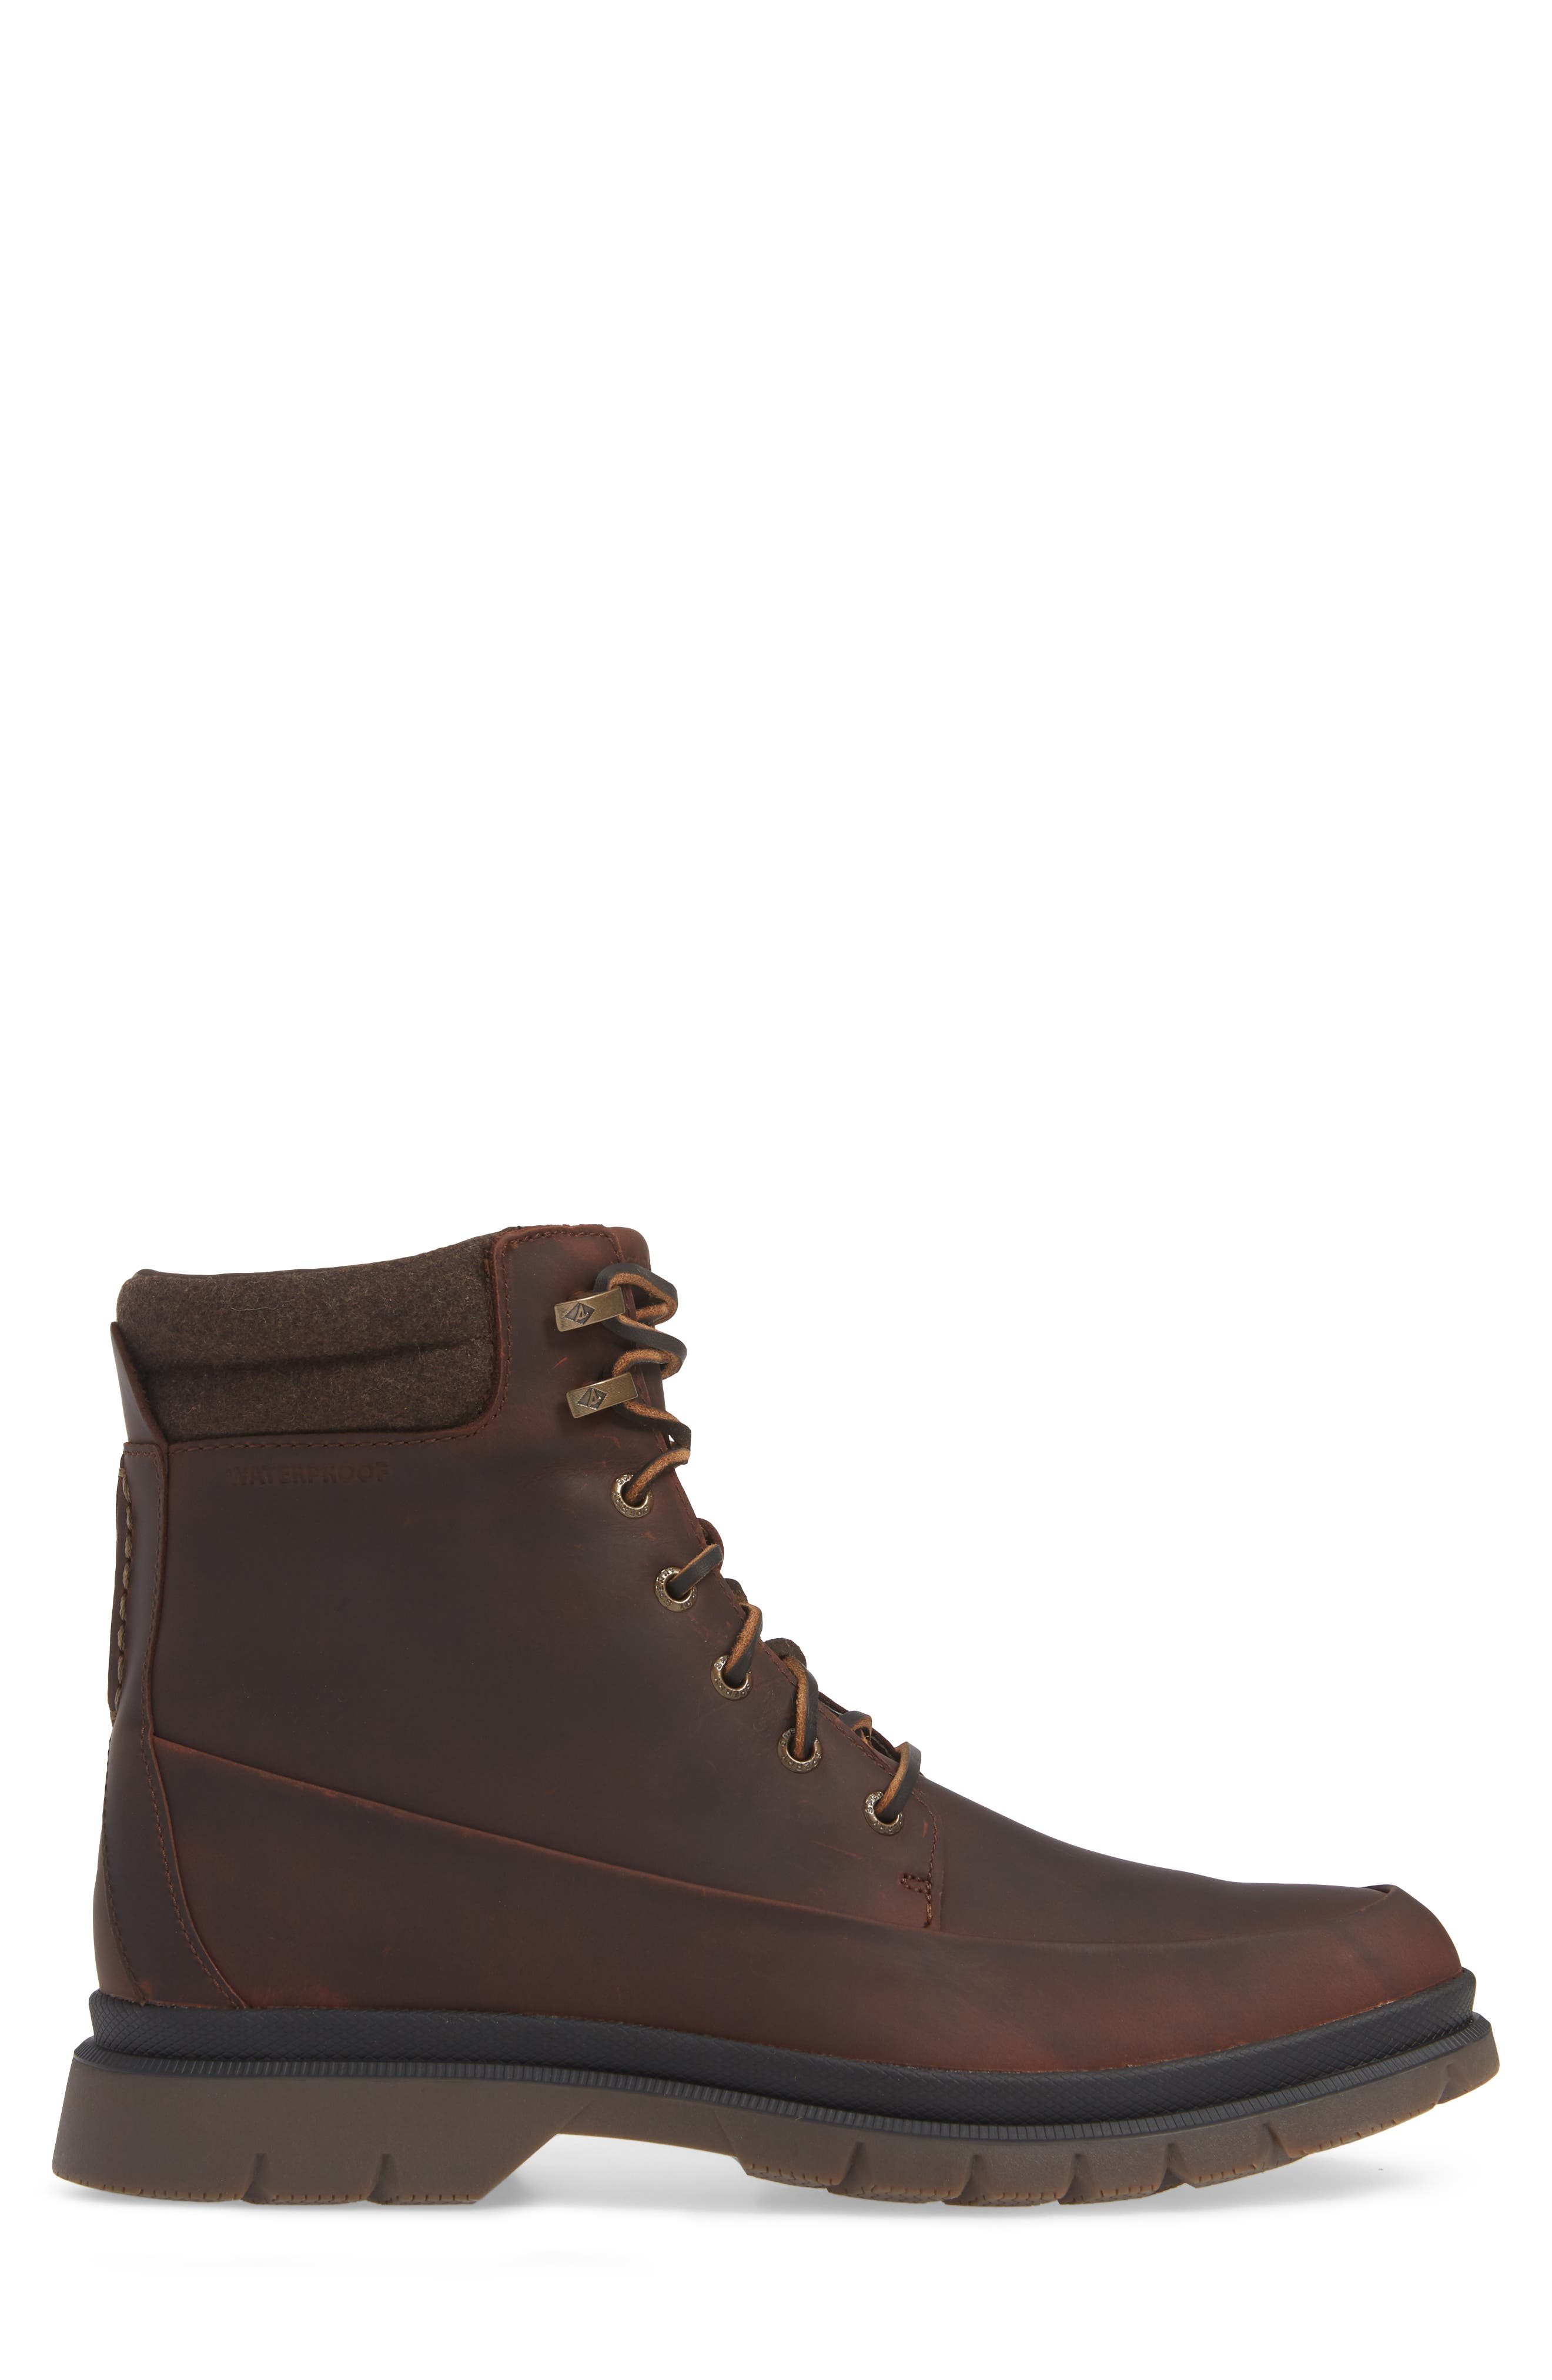 SPERRY, Watertown Waterproof Moc Toe Boot, Alternate thumbnail 3, color, BROWN